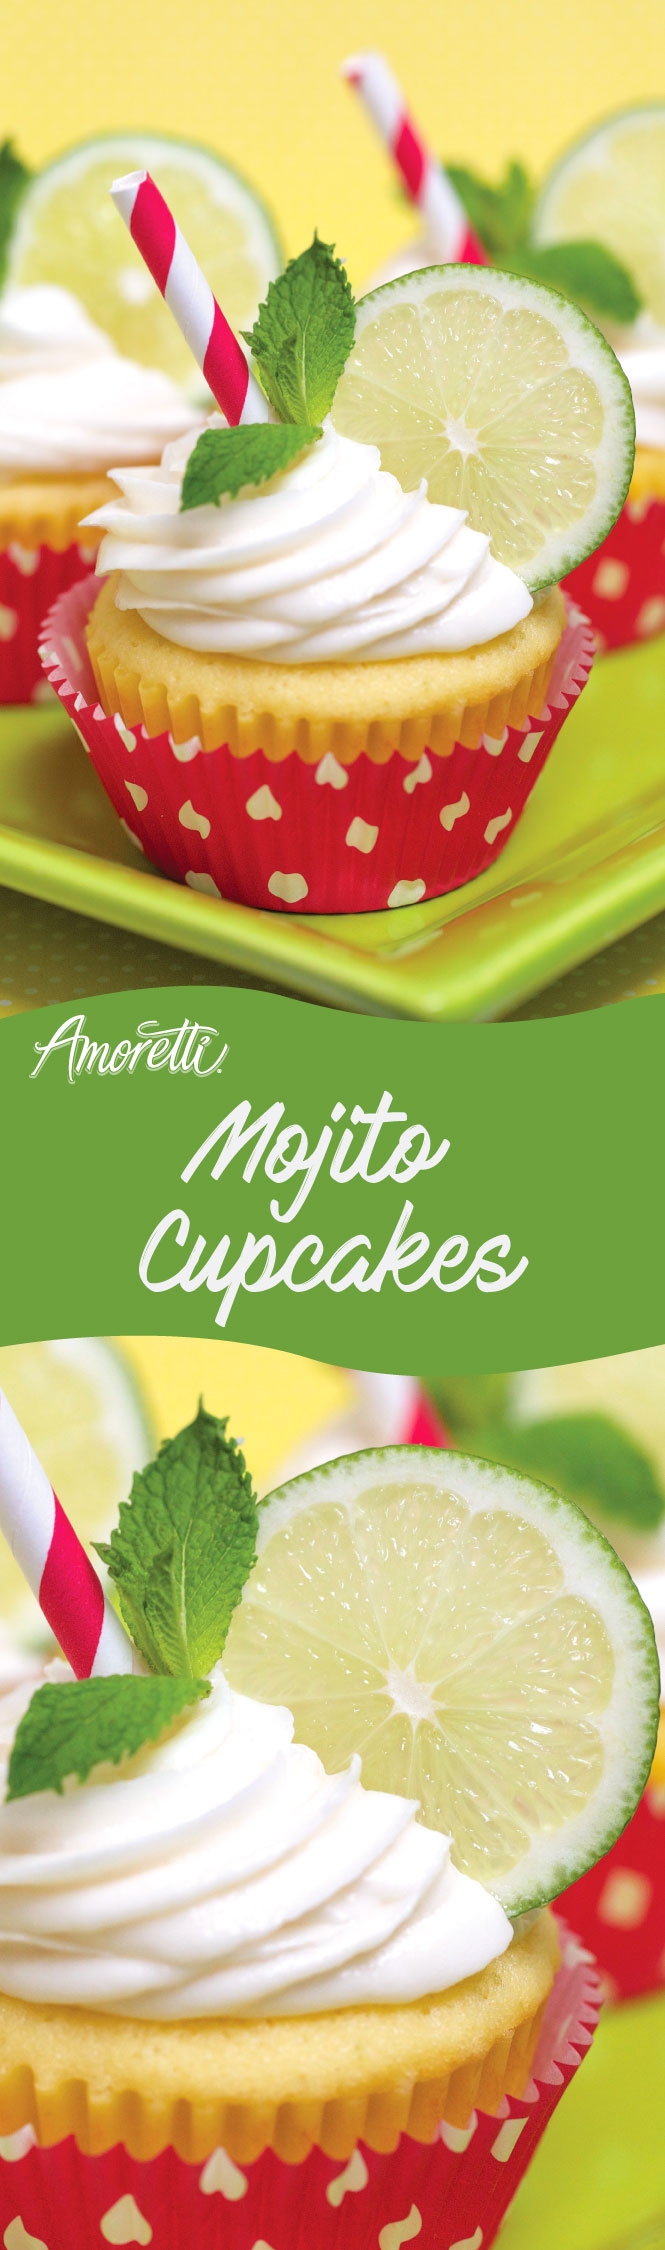 Image yourself soaking up the sun and enjoying the beach when you take a bite of this delicious Mojito Cupcake!